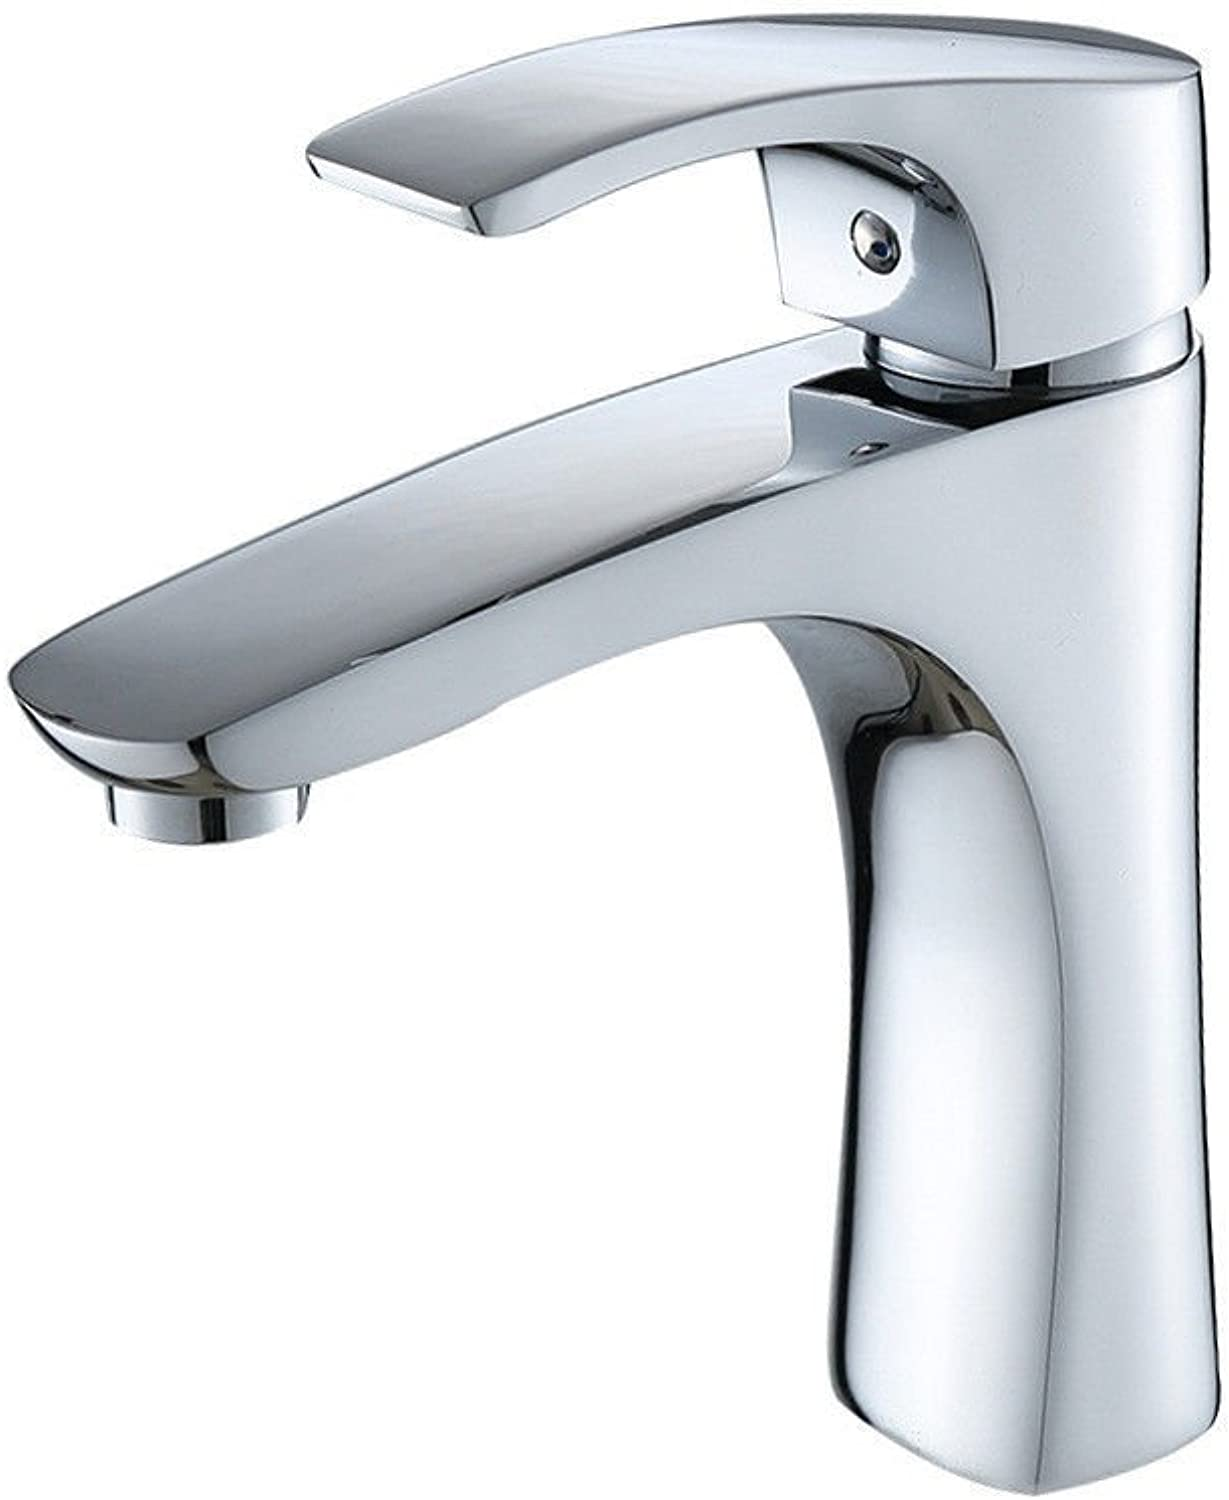 ETERNAL QUALITY Bathroom Sink Basin Tap Brass Mixer Tap Washroom Mixer Faucet The Brass chrome sink hot and cold basin sinks Bathroom Cabinet Faucet Kitchen Sink Taps